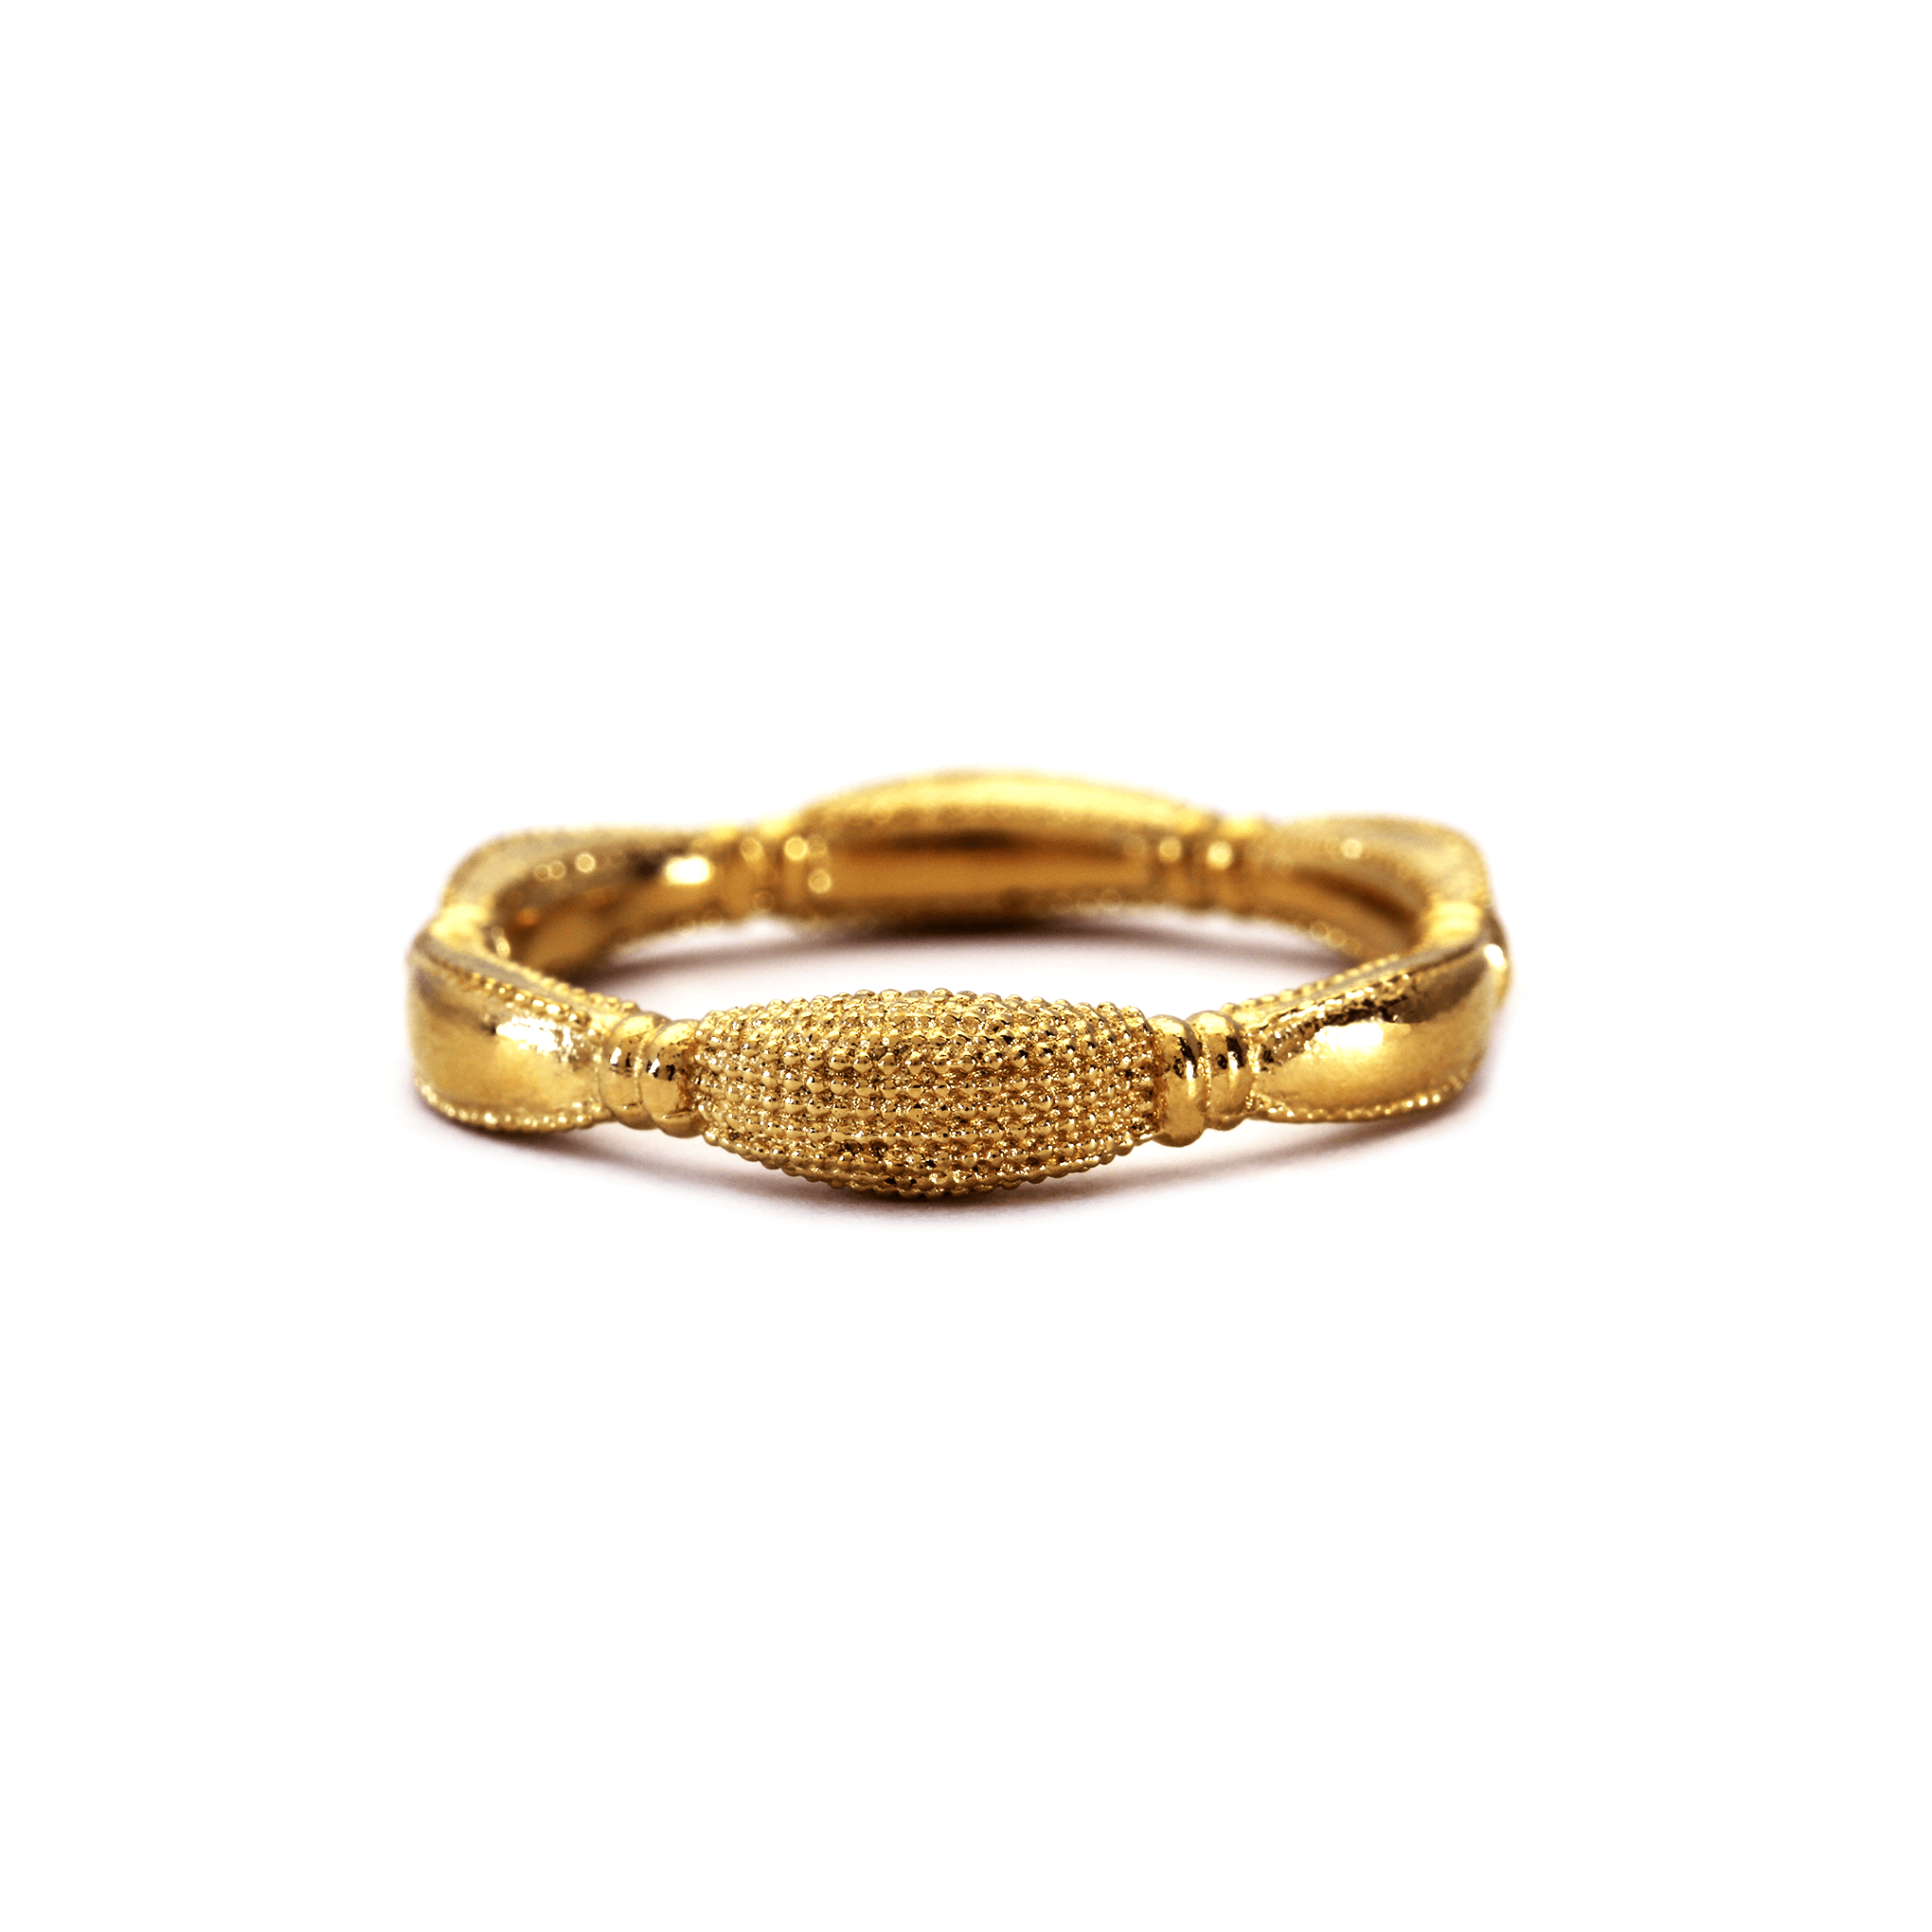 Mantid King Yellow Gold Ring